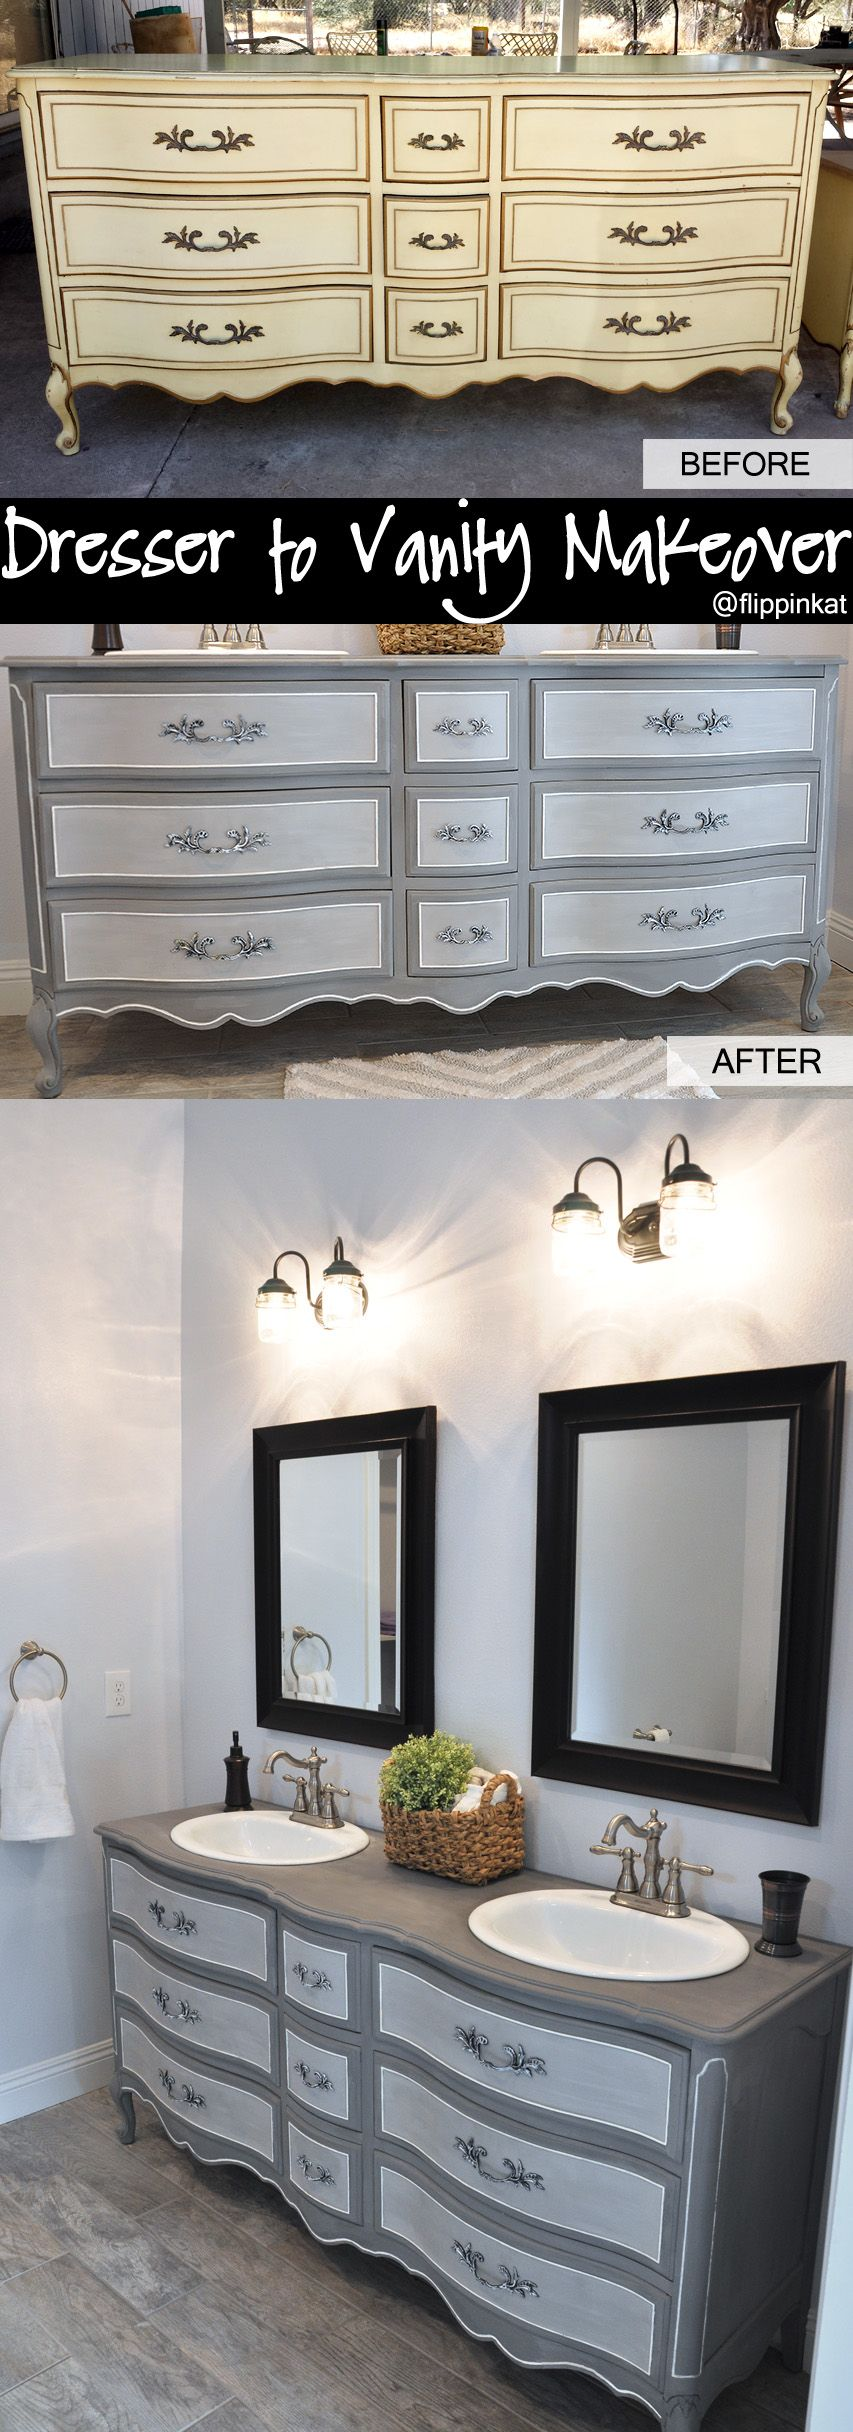 Dresser To Vanity And Bathroom Renovation. Got An Old French Provincial  Style Dresser Off Craigslist